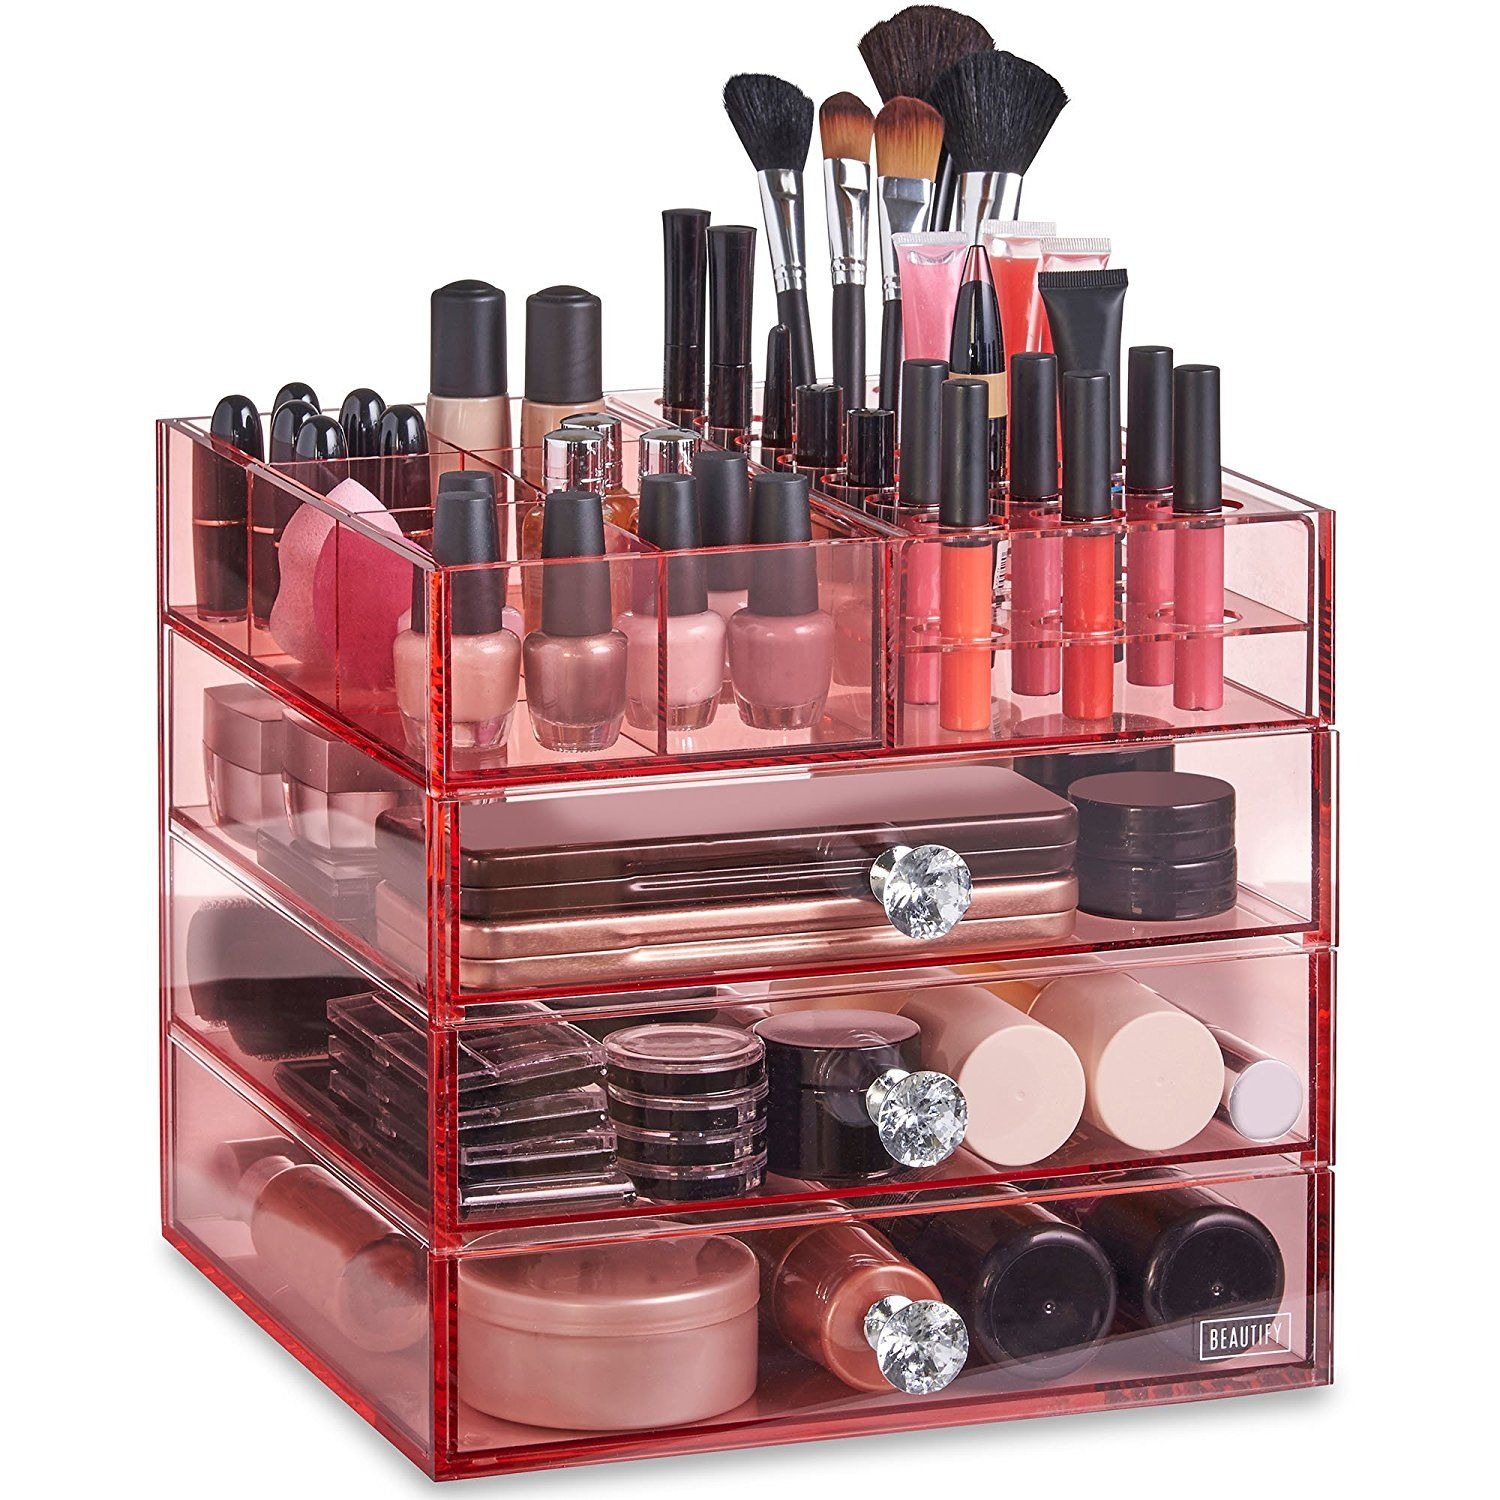 Beautify Large 4 Tier Blush Pink Acrylic Cosmetic Makeup Storage Cube Organizer With 3 Drawers And 6 Upper Makeup Storage Makeup Organization Makeup Cosmetics